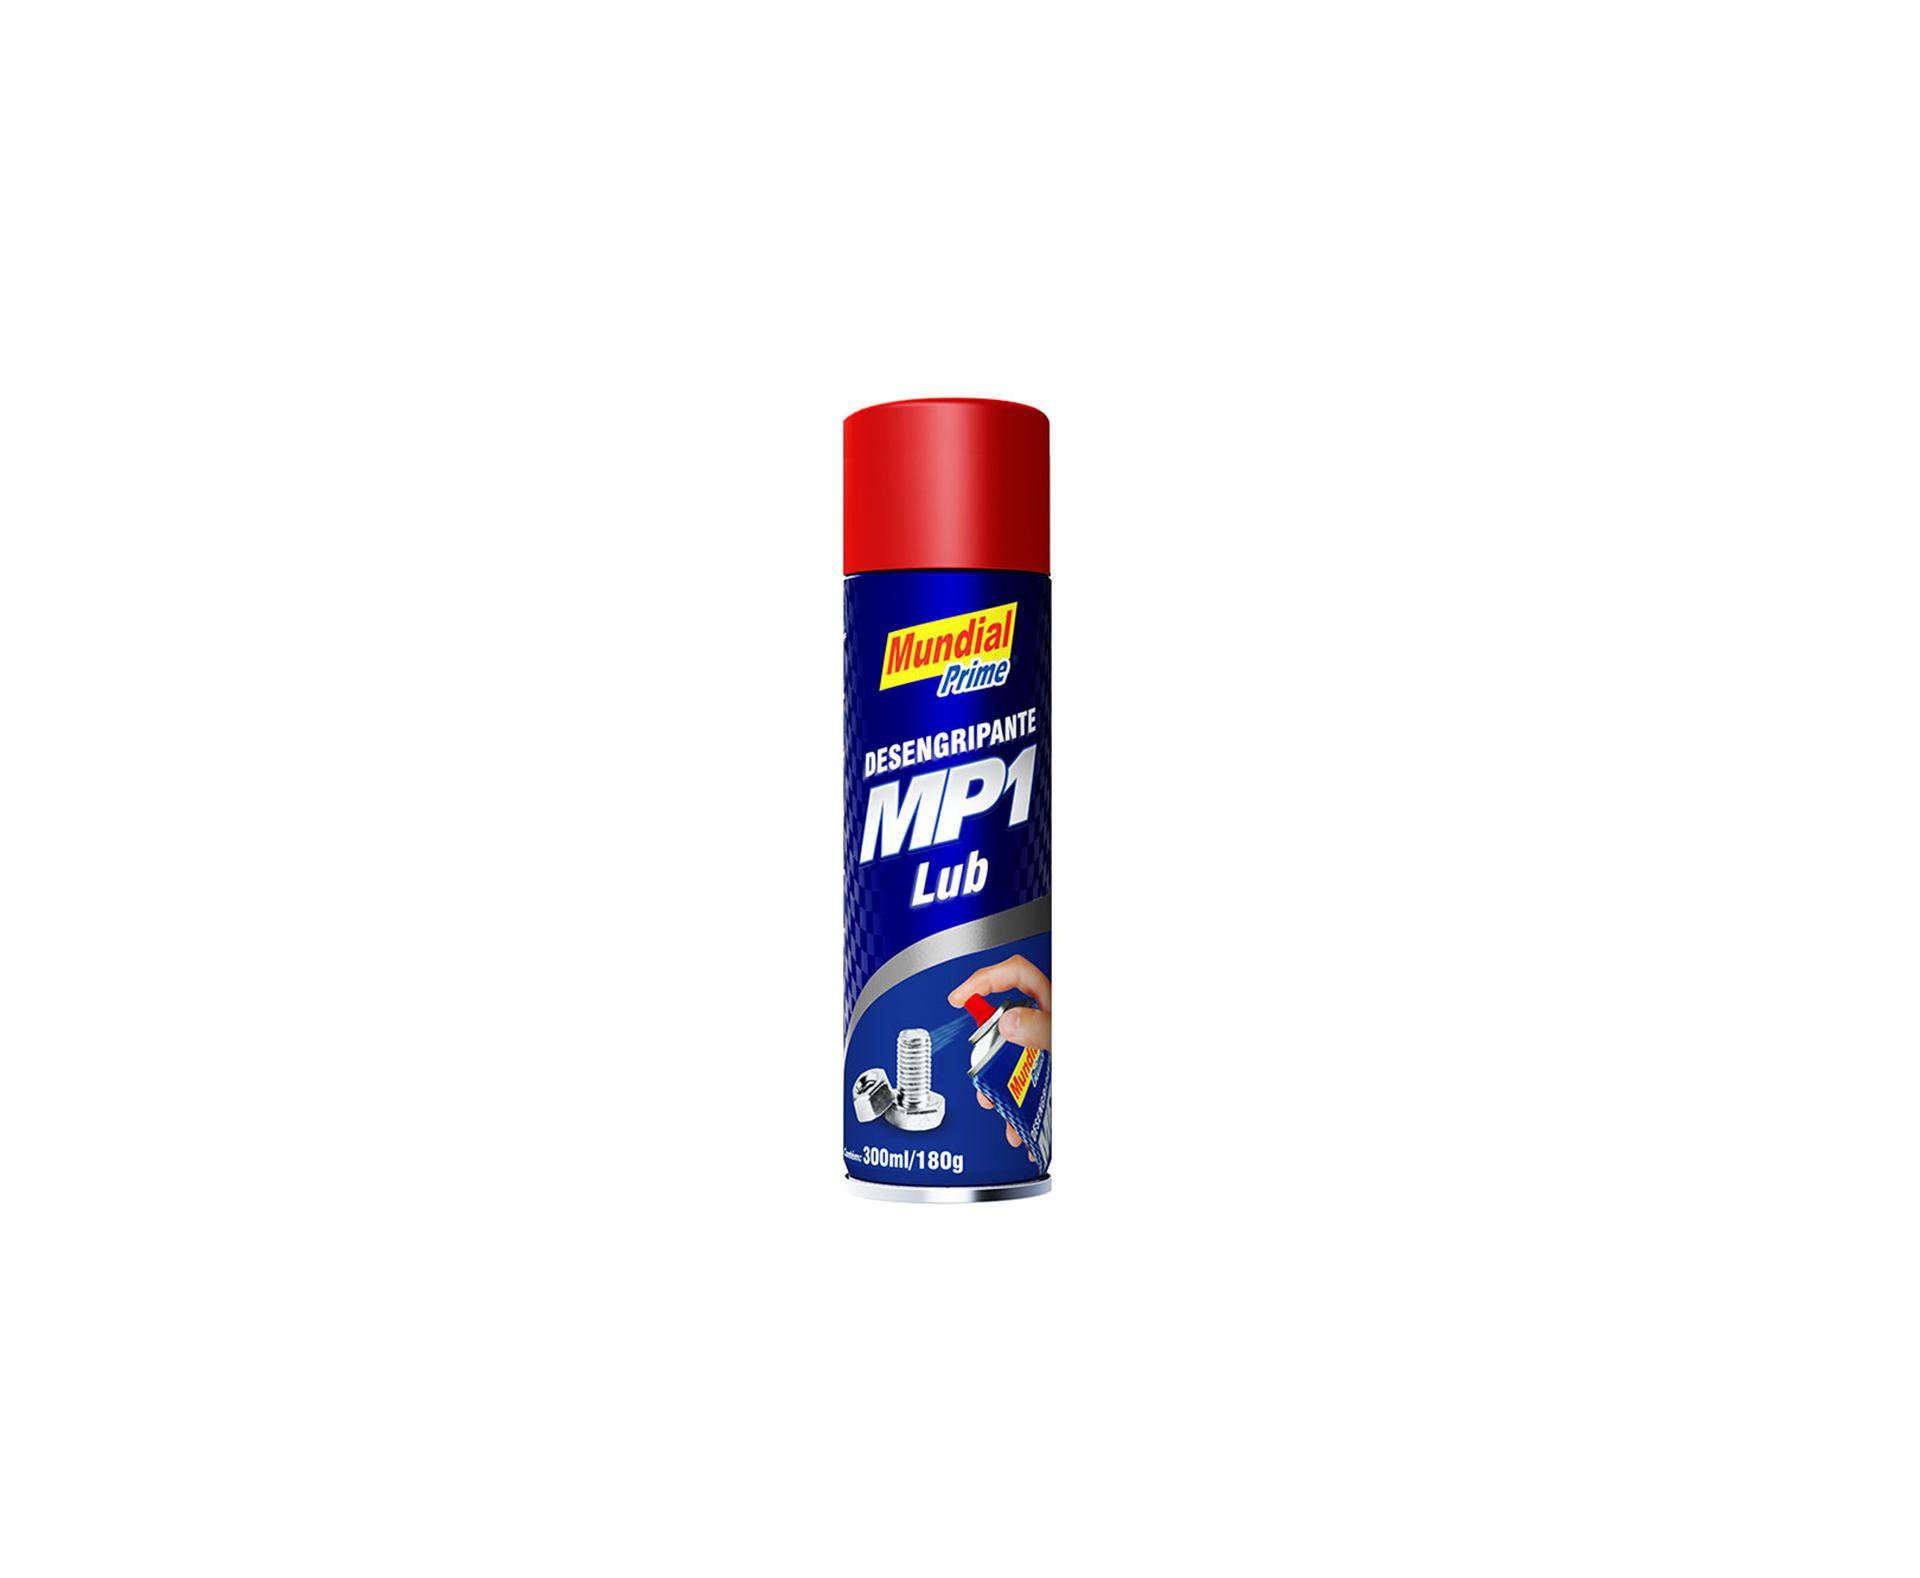 Desengripante Mp1 Spray 321ml - Mundial Prime